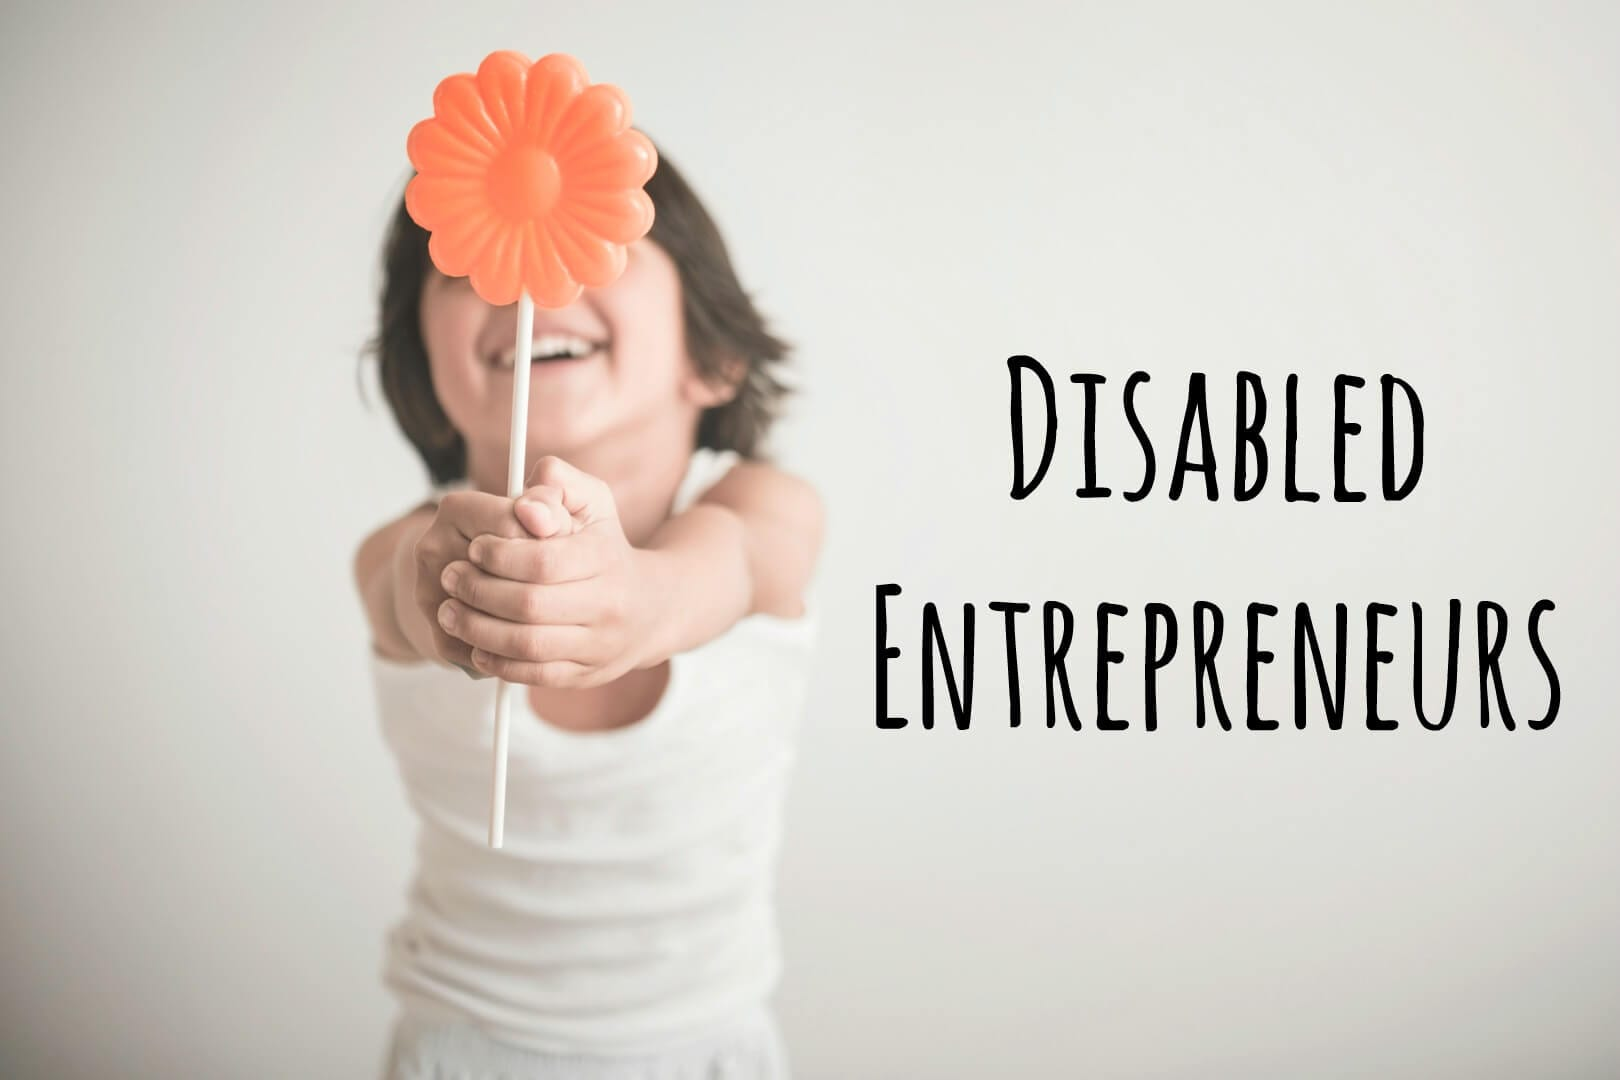 "photo for the disability gift guide: image description: child holding orange flower in front of her smiiling face. Text to the right reads ""Disabled Entrepreneurs"""